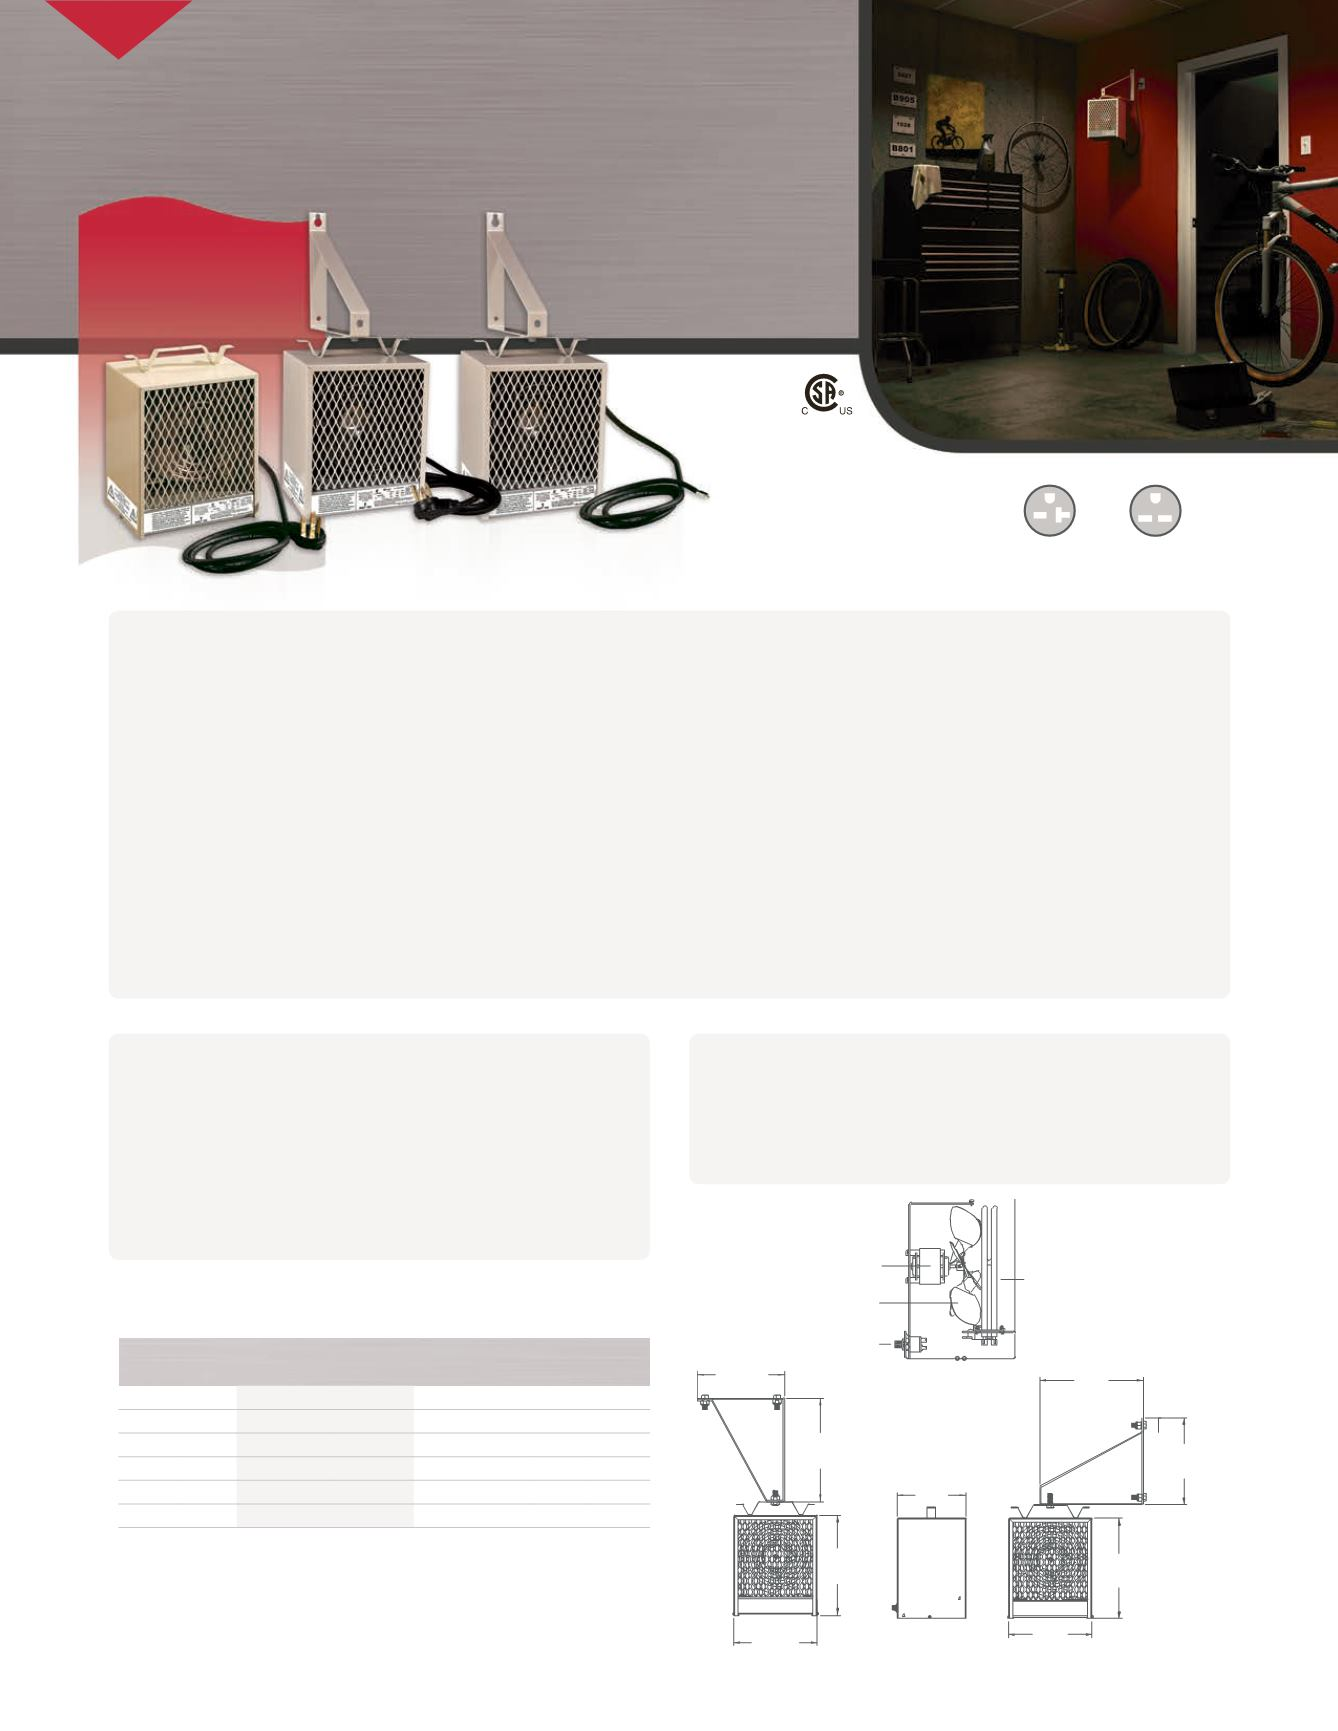 dimplex baseboard heater instruction manual